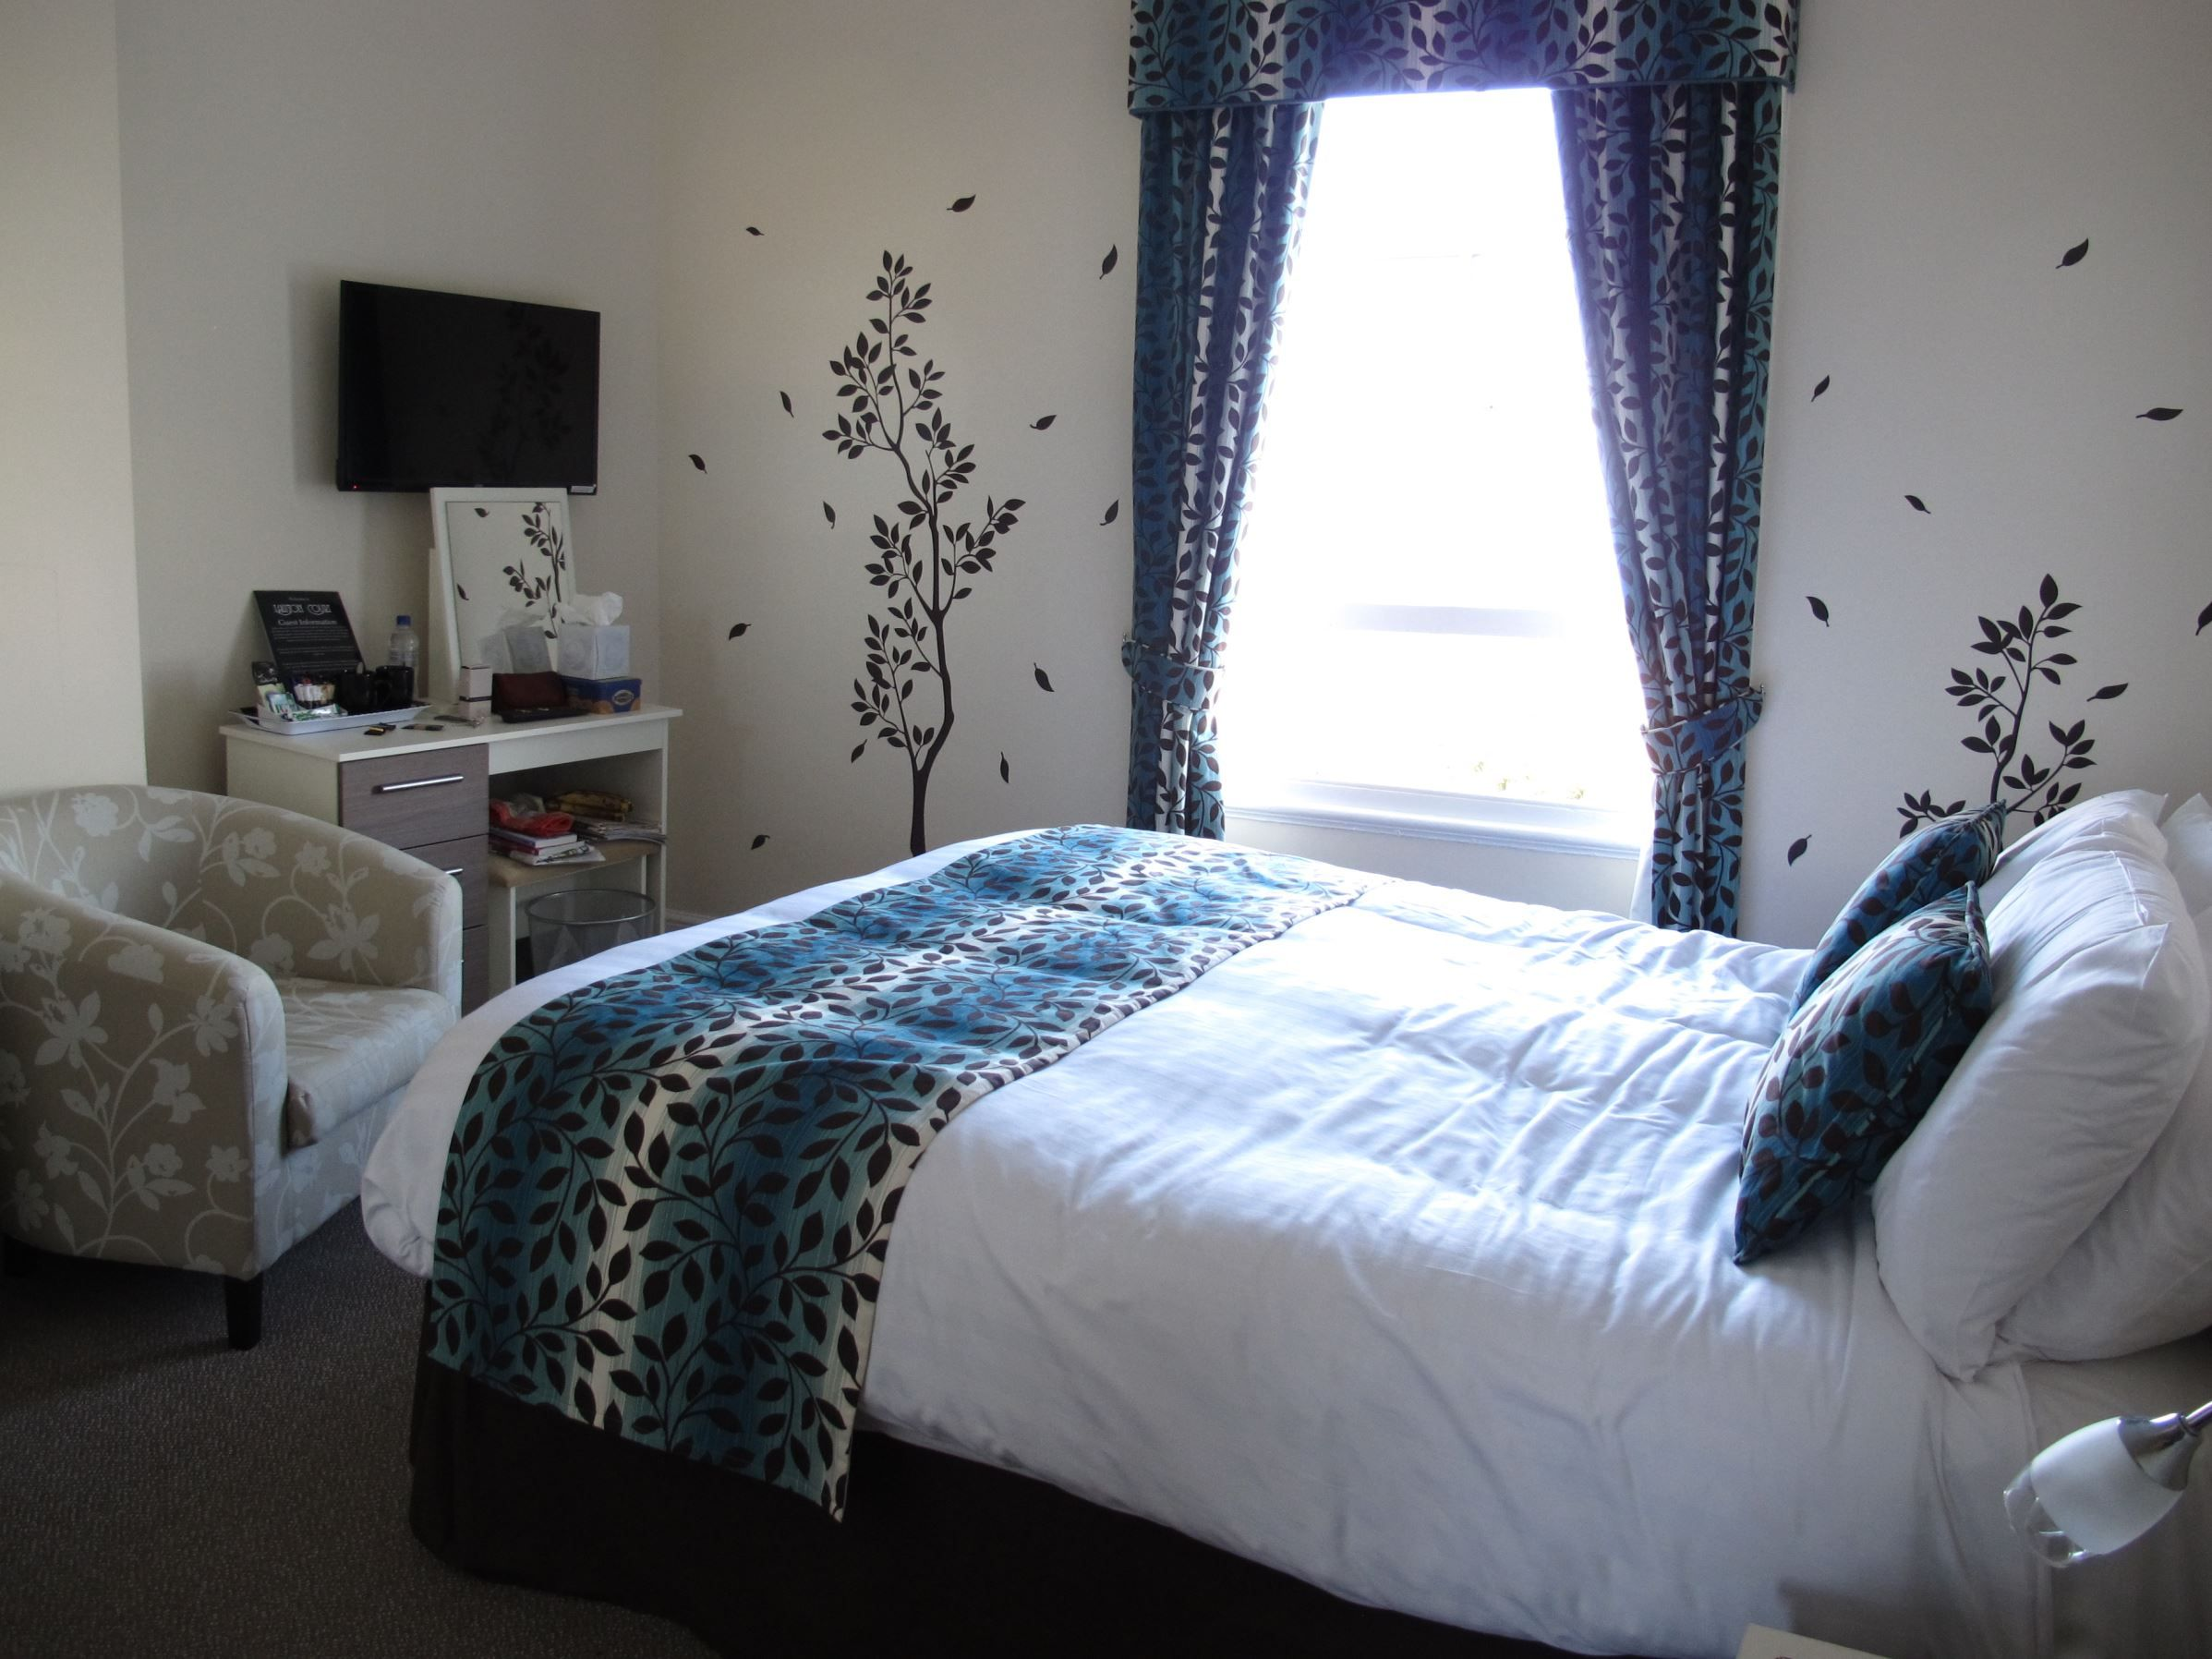 13th Annual Tripadvisor Travellers Choice Awards Lawton Court Hotel Llandudno Wales